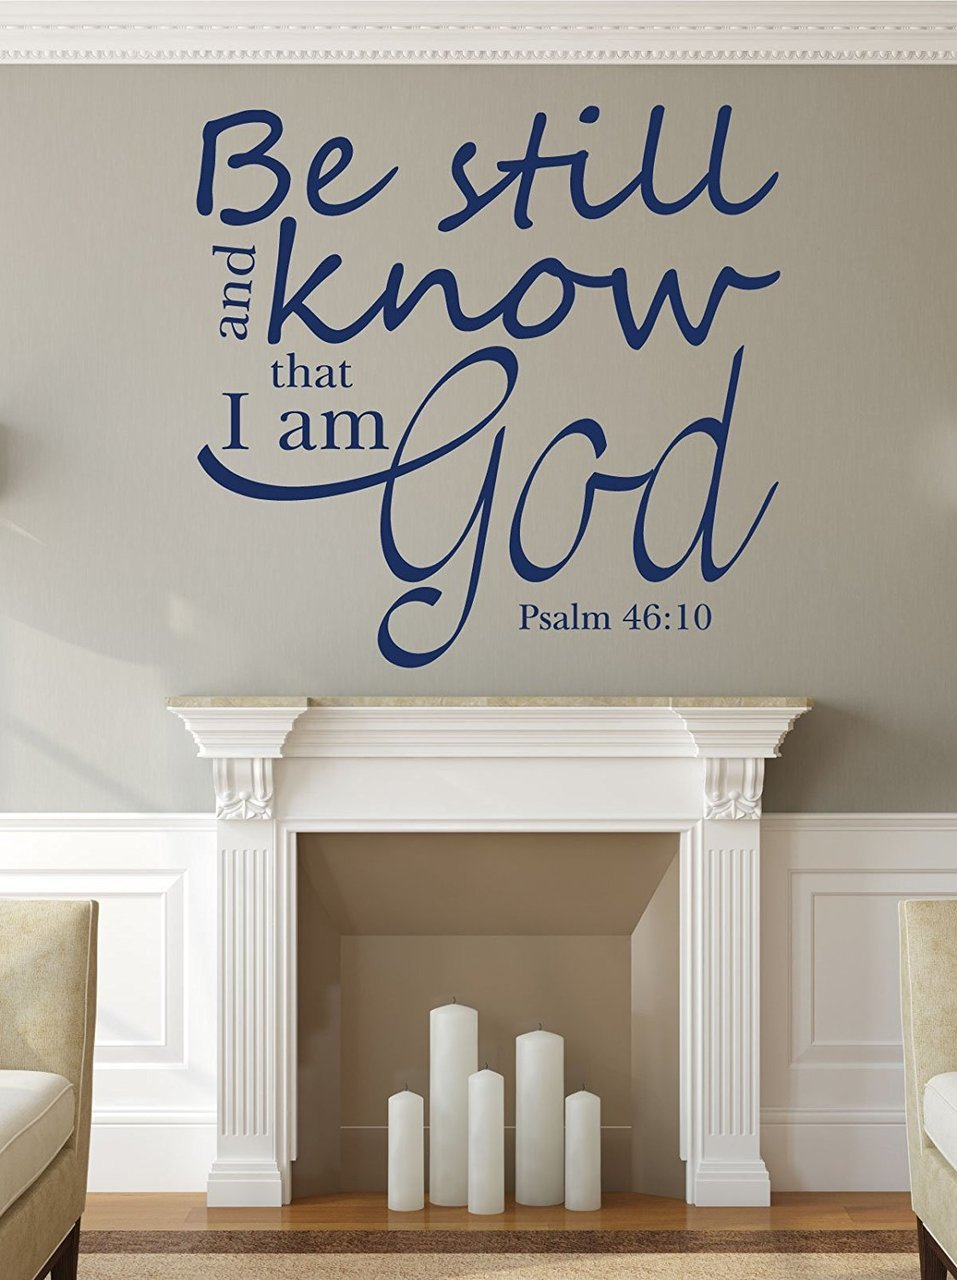 Bible Verse Wall Decal - Psalm 46:10 - Be Still and Know That I Am God